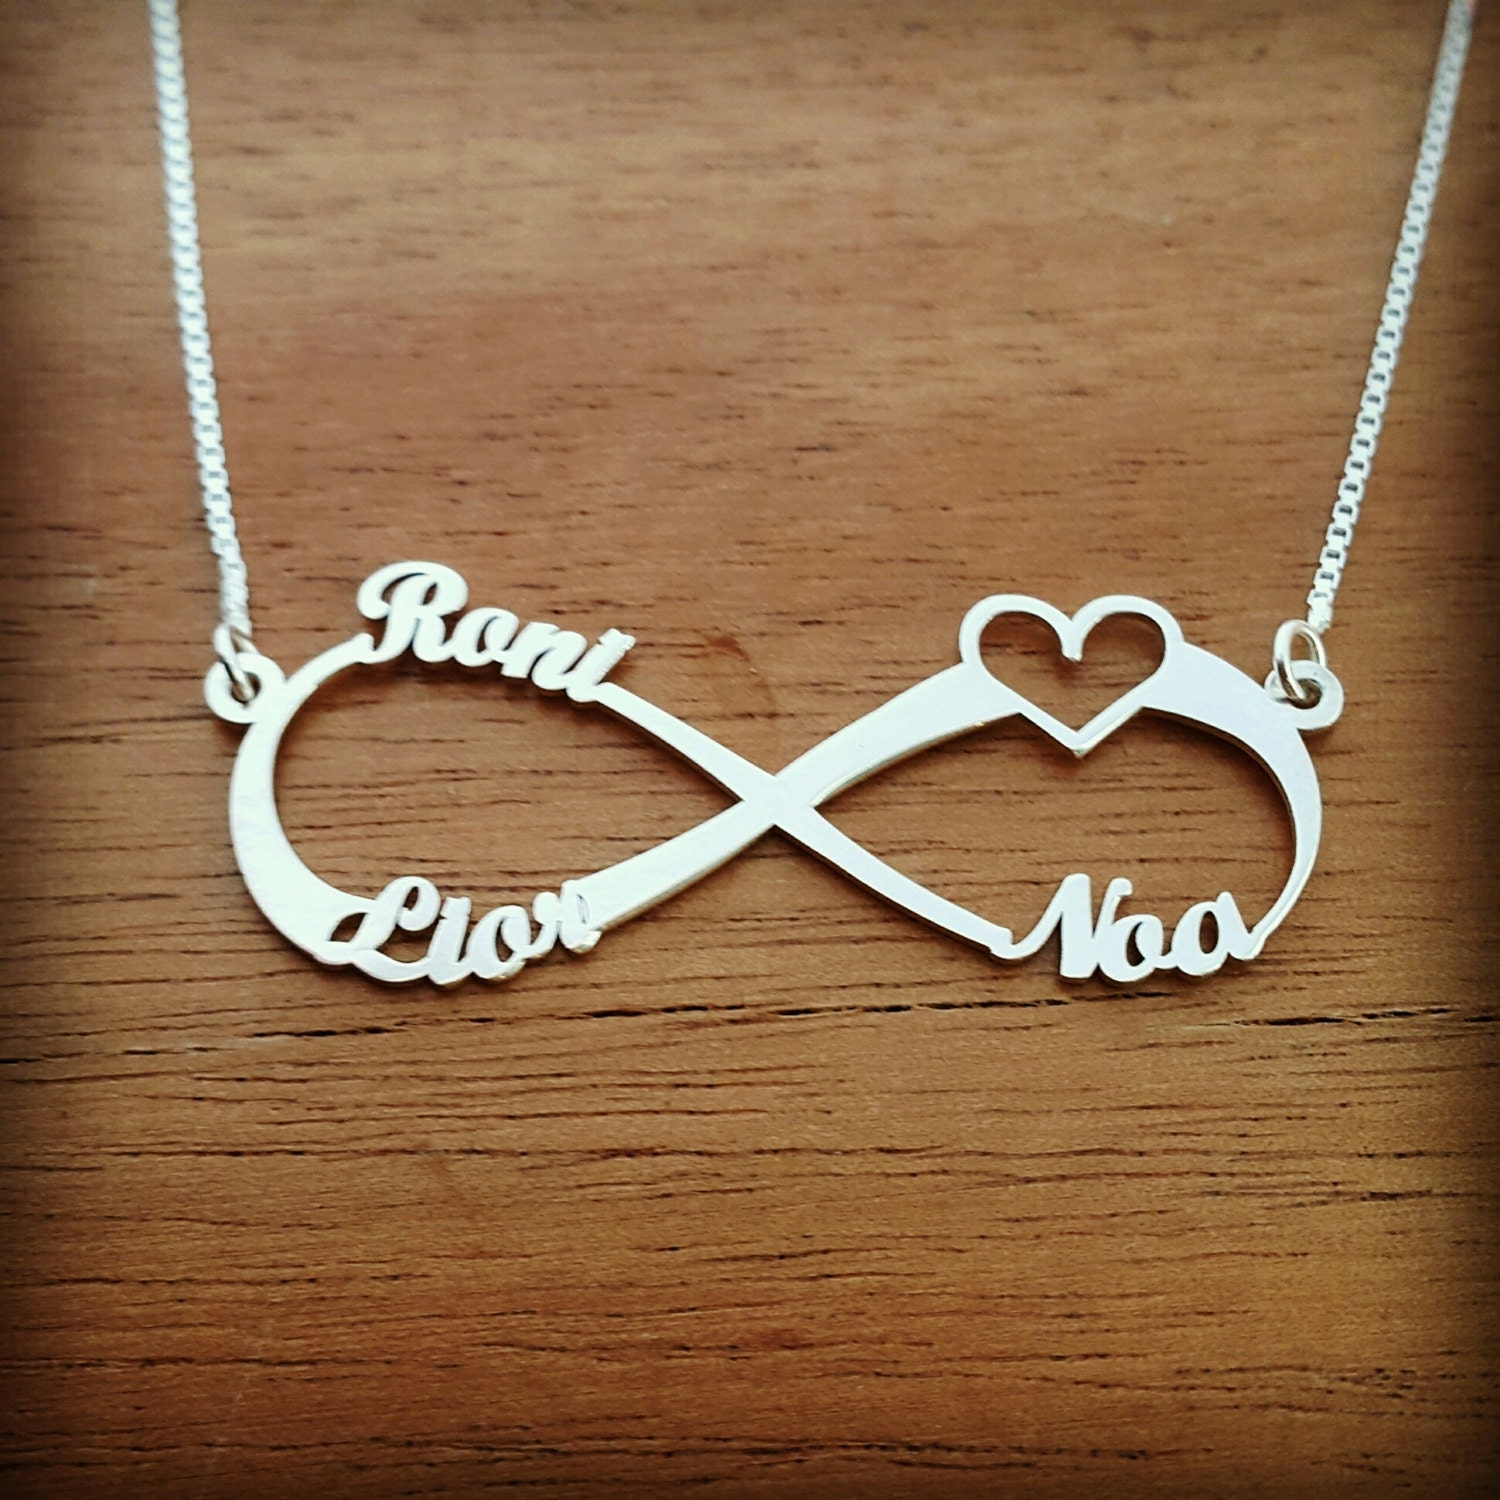 Infinity necklace personalized infinity necklace silver zoom biocorpaavc